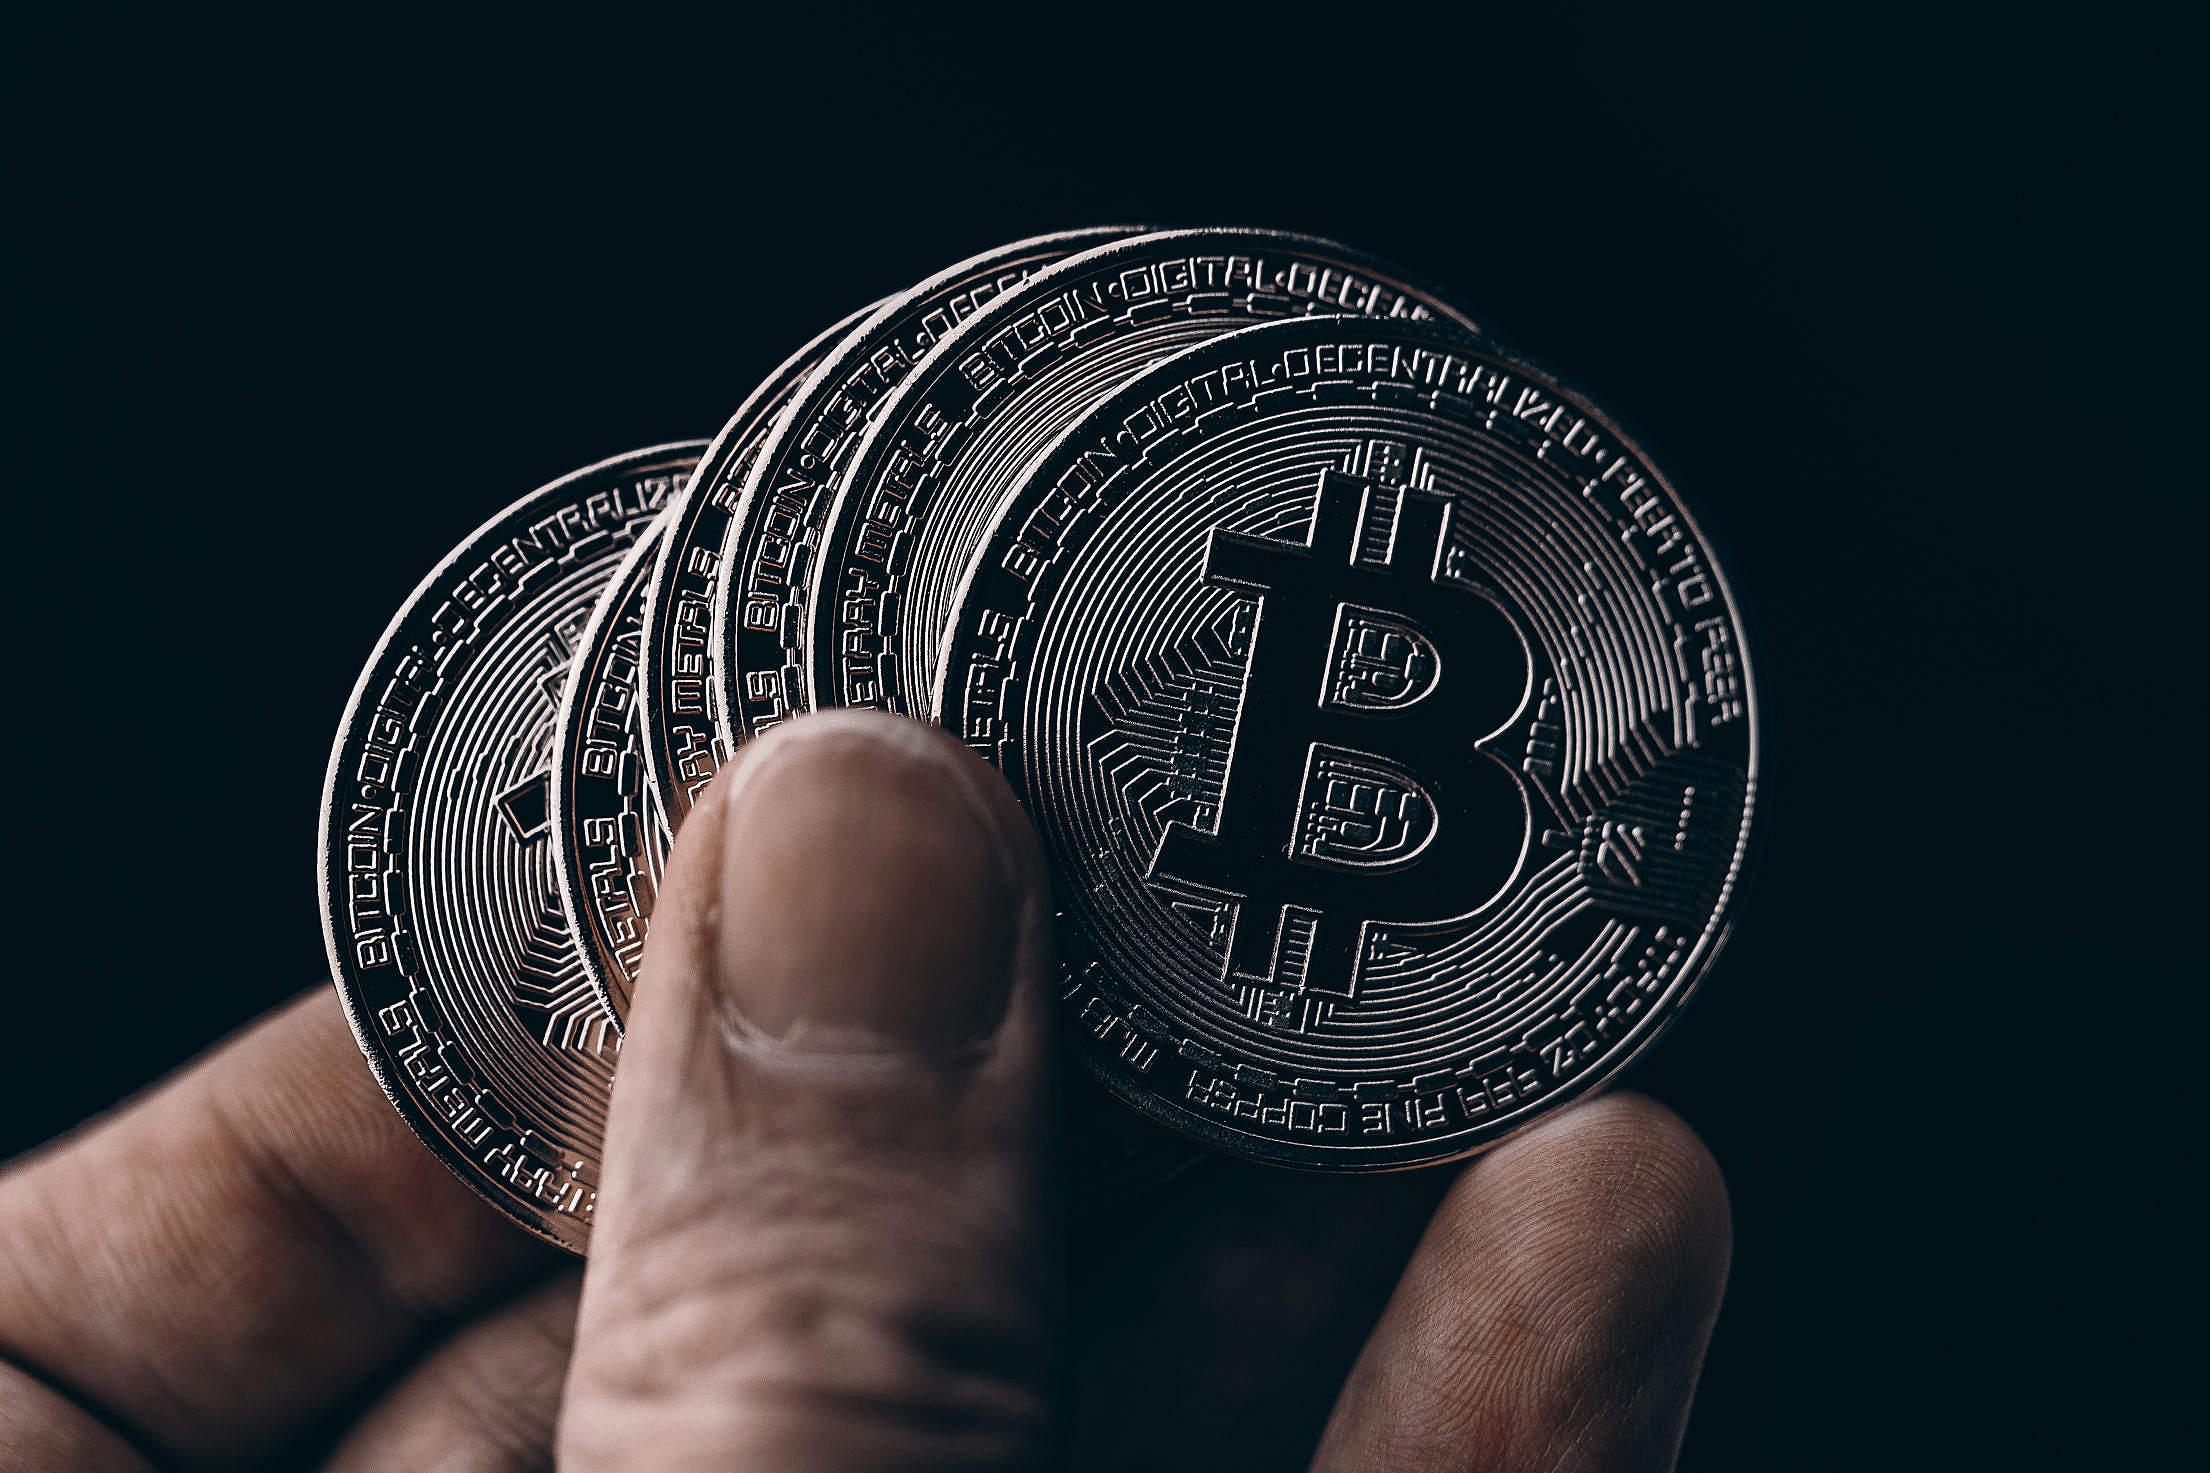 Black Bitcoin Coins Free Stock Photo